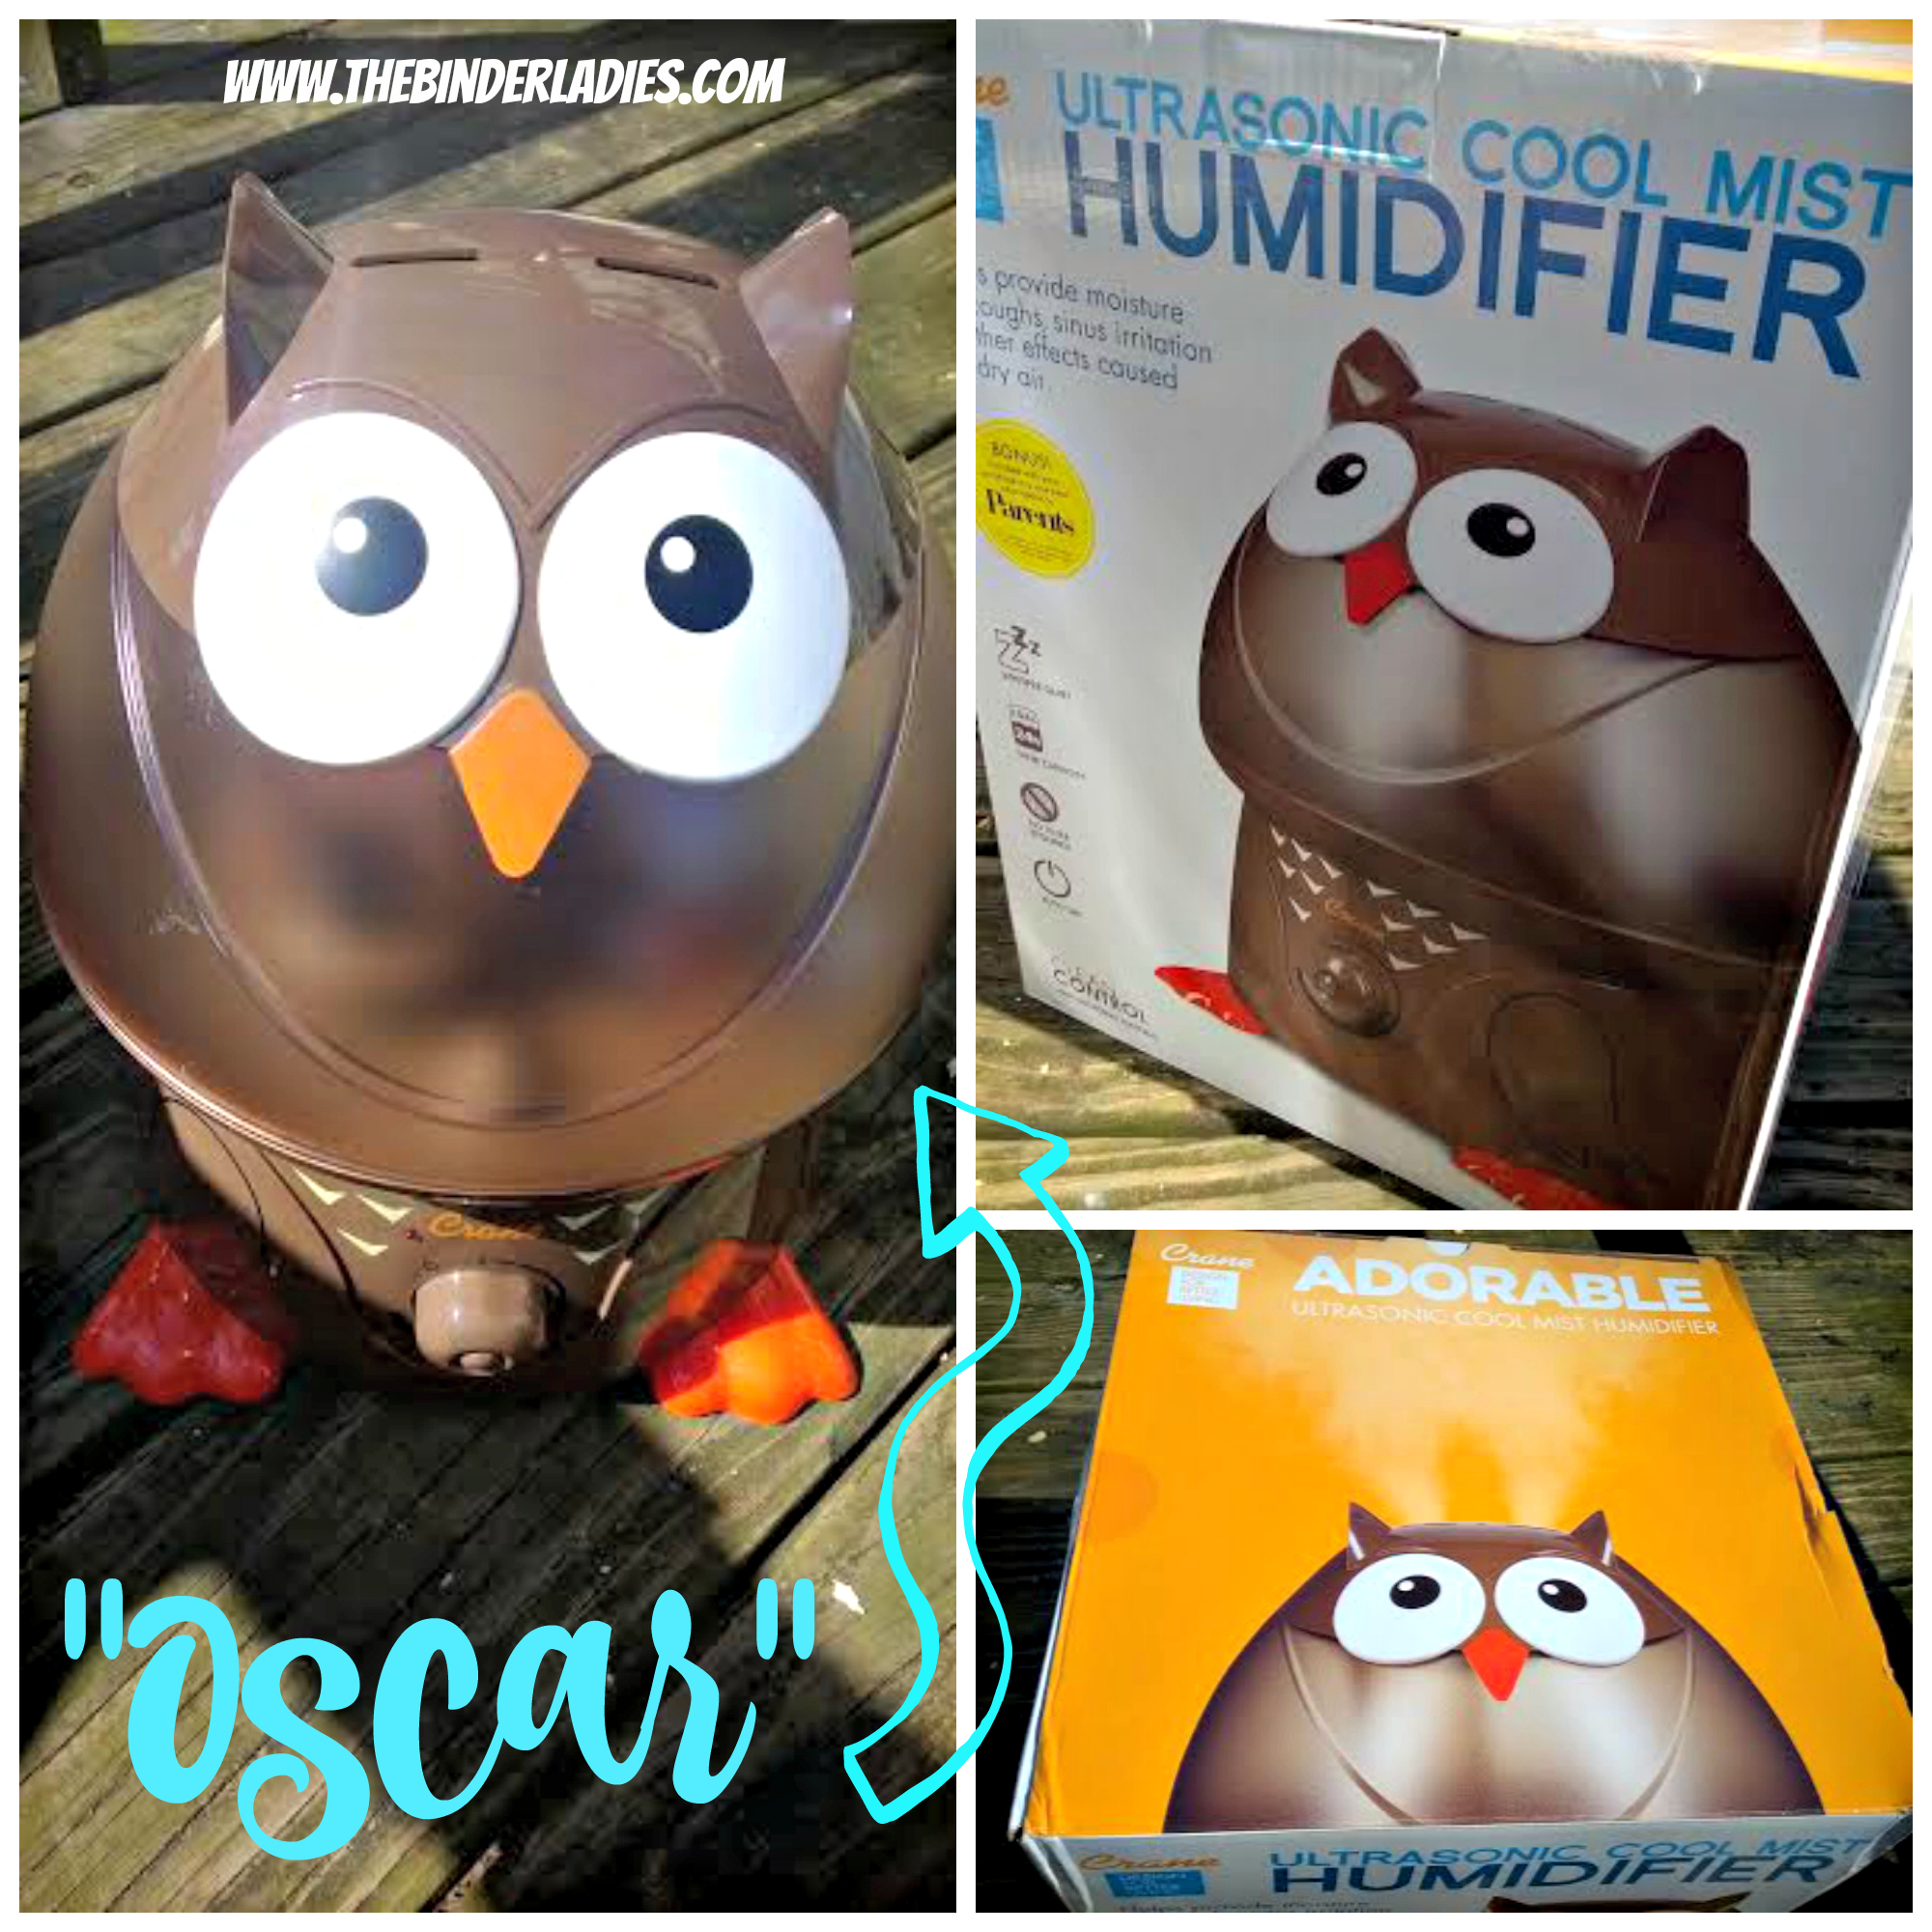 Crane Humidifiers - great looking humidifiers with tons of features!